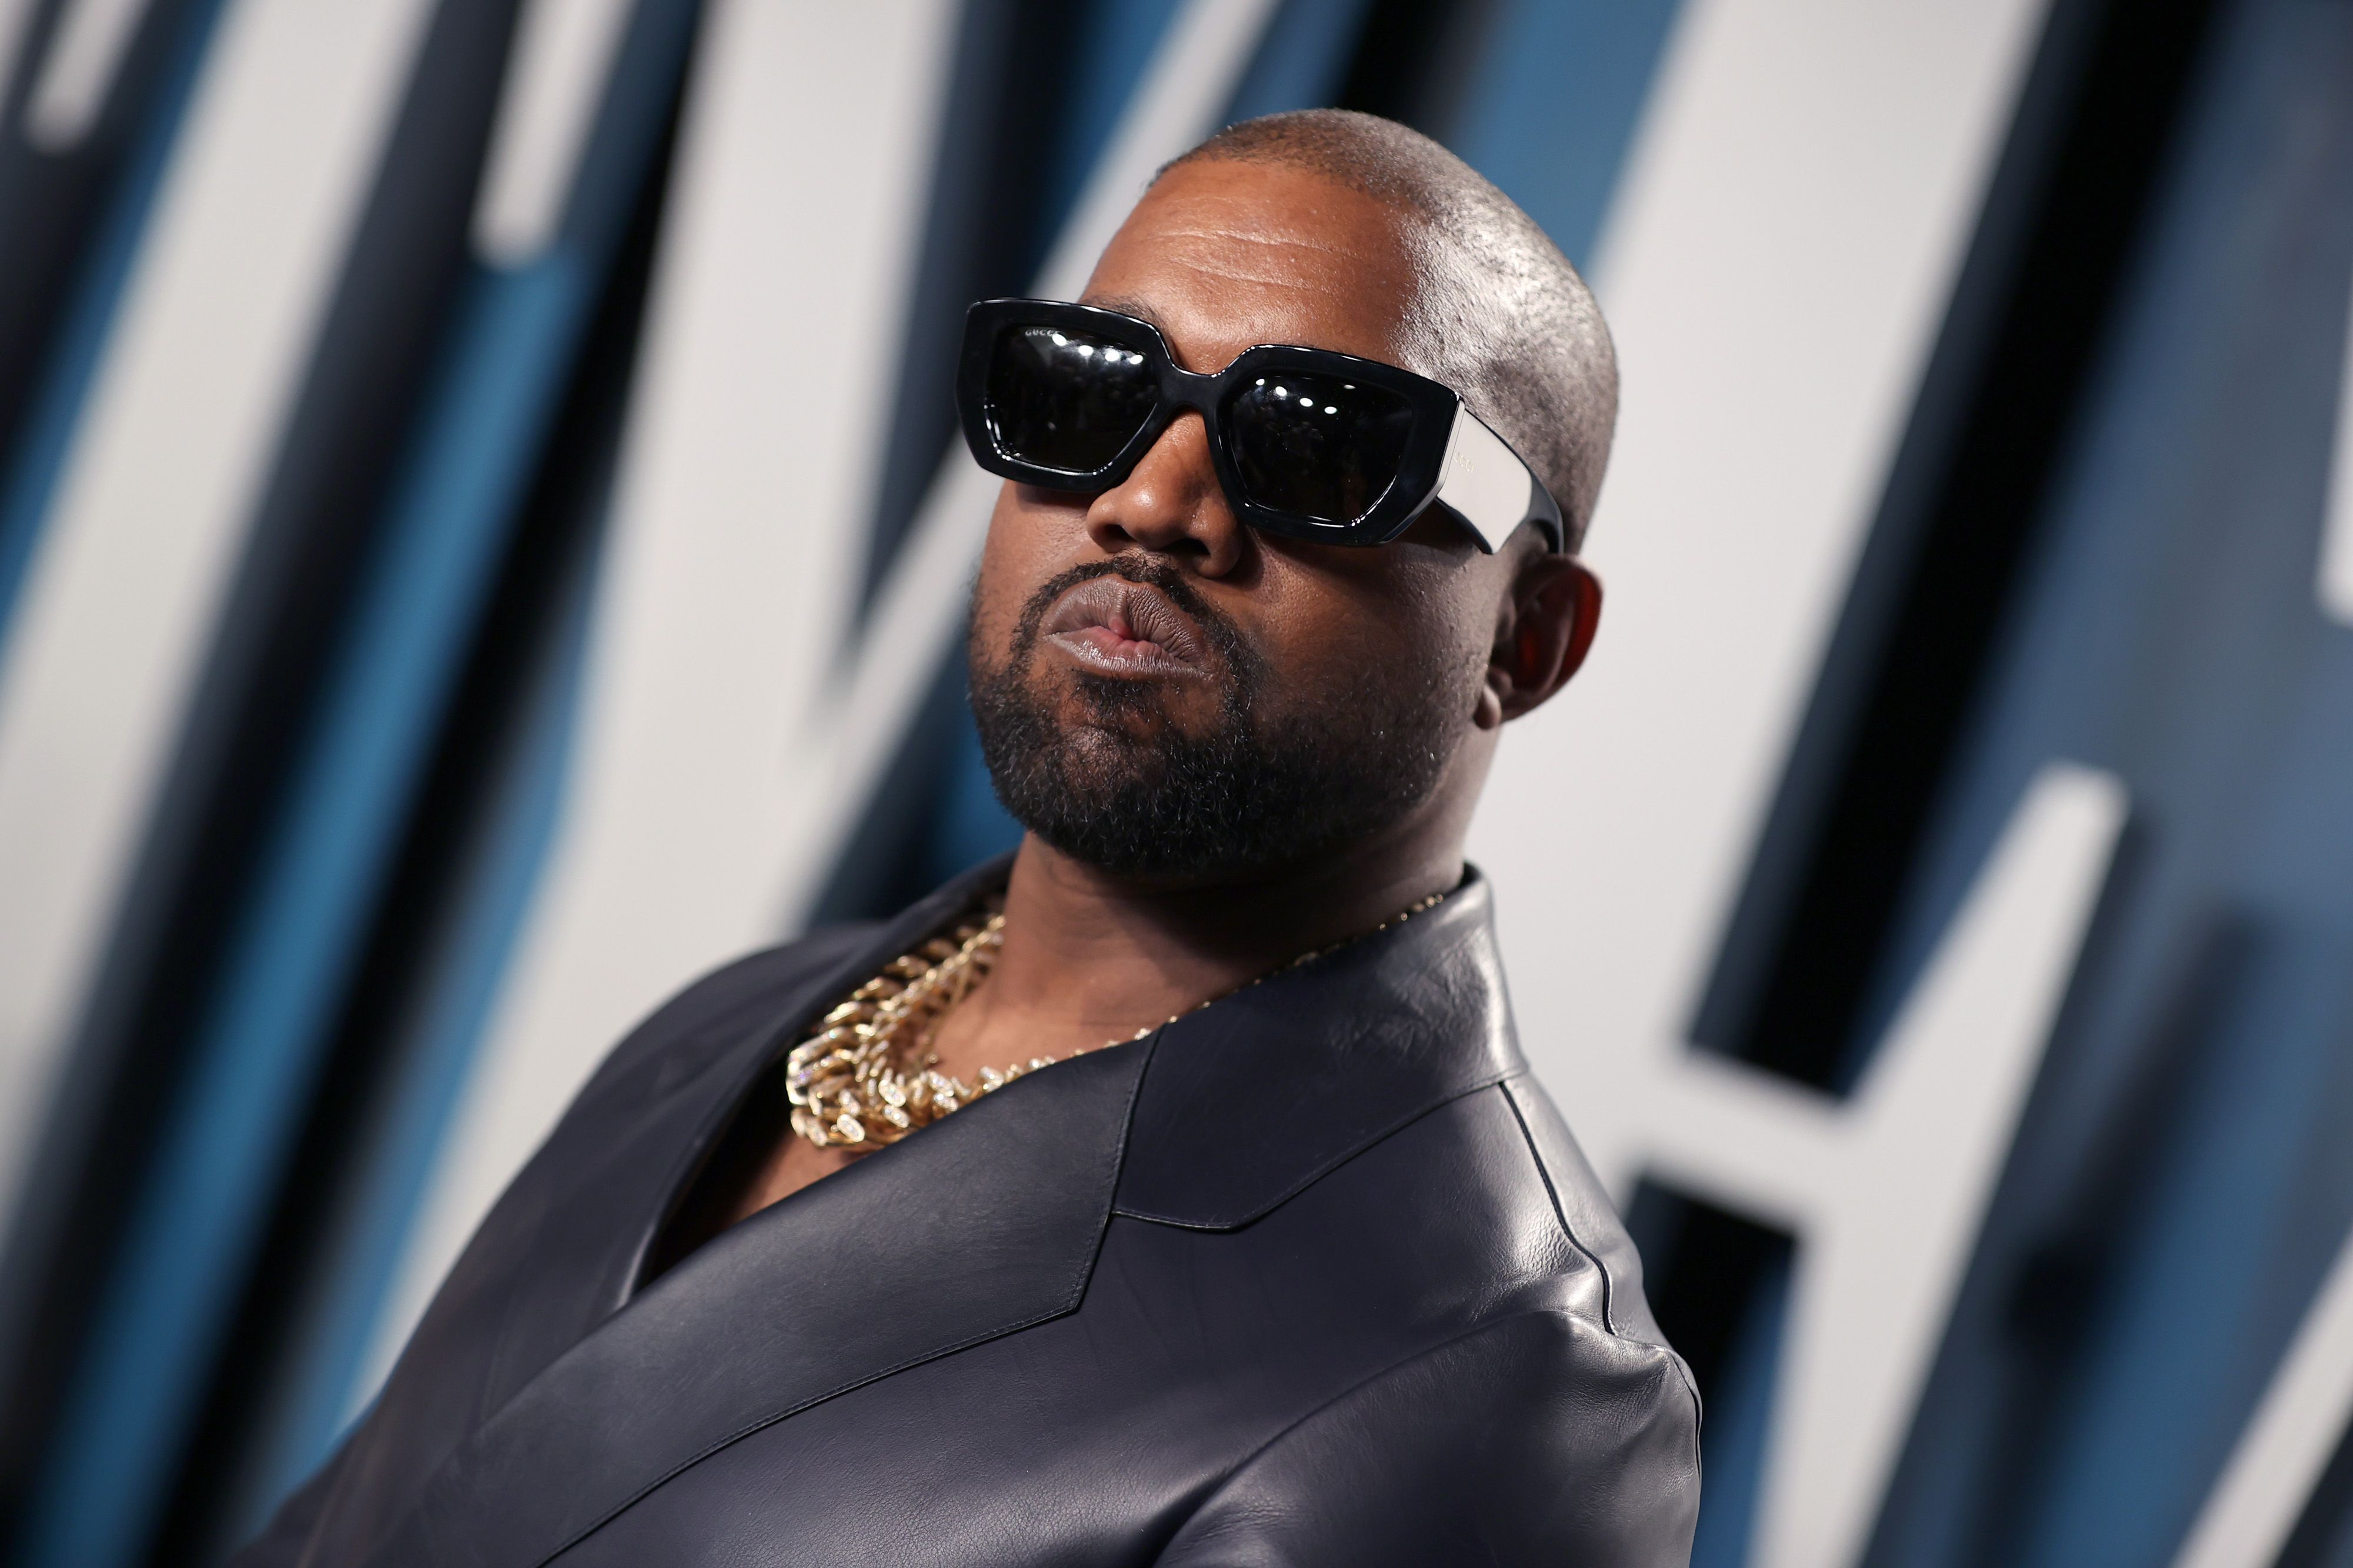 Kanye West unleashed a torrent of news announcements today.